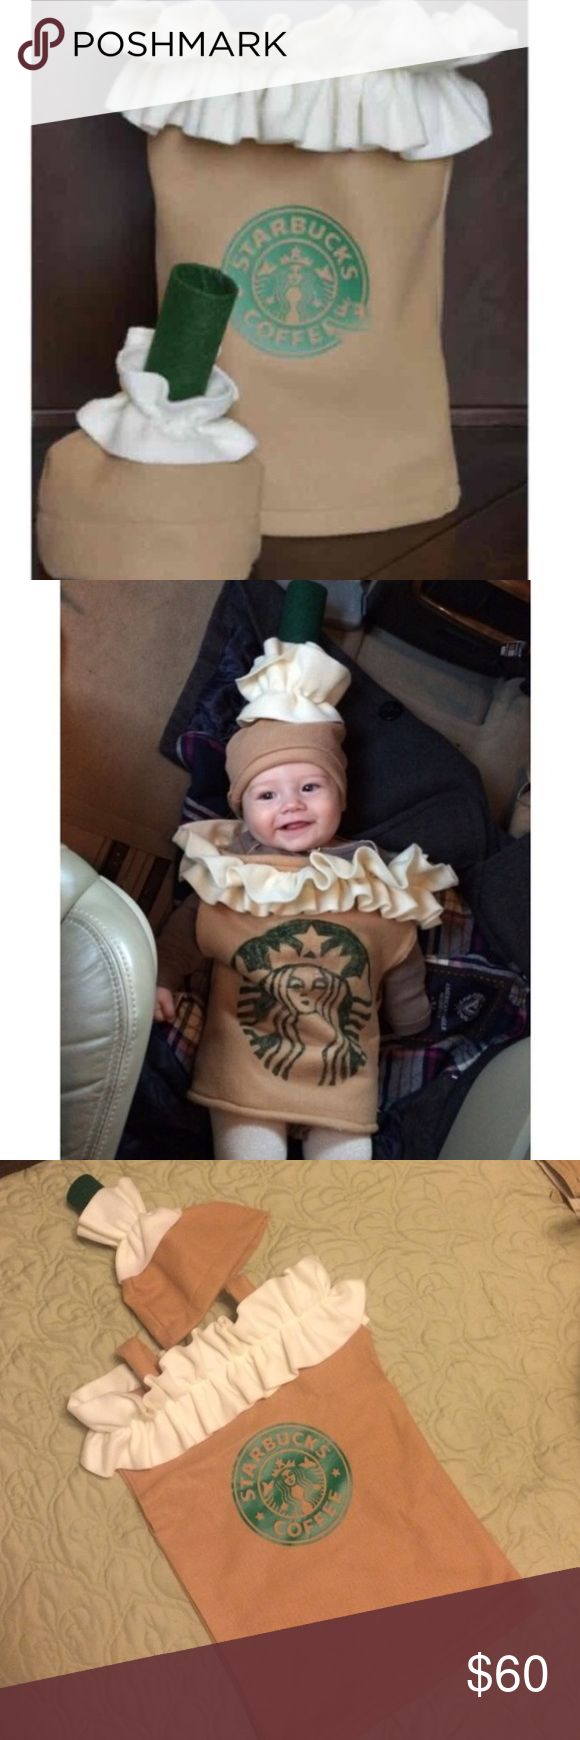 HPStarbucks frappe costume size 12-18 months Custom made Halloween costume for baby SIZE 12-18 months! Adorable Starbucks frappuccino costume people will be wowed!! Brand new! The first photo is exactly what you will get. HOST PICK- everything kids party- 8/31/16 Costumes Halloween